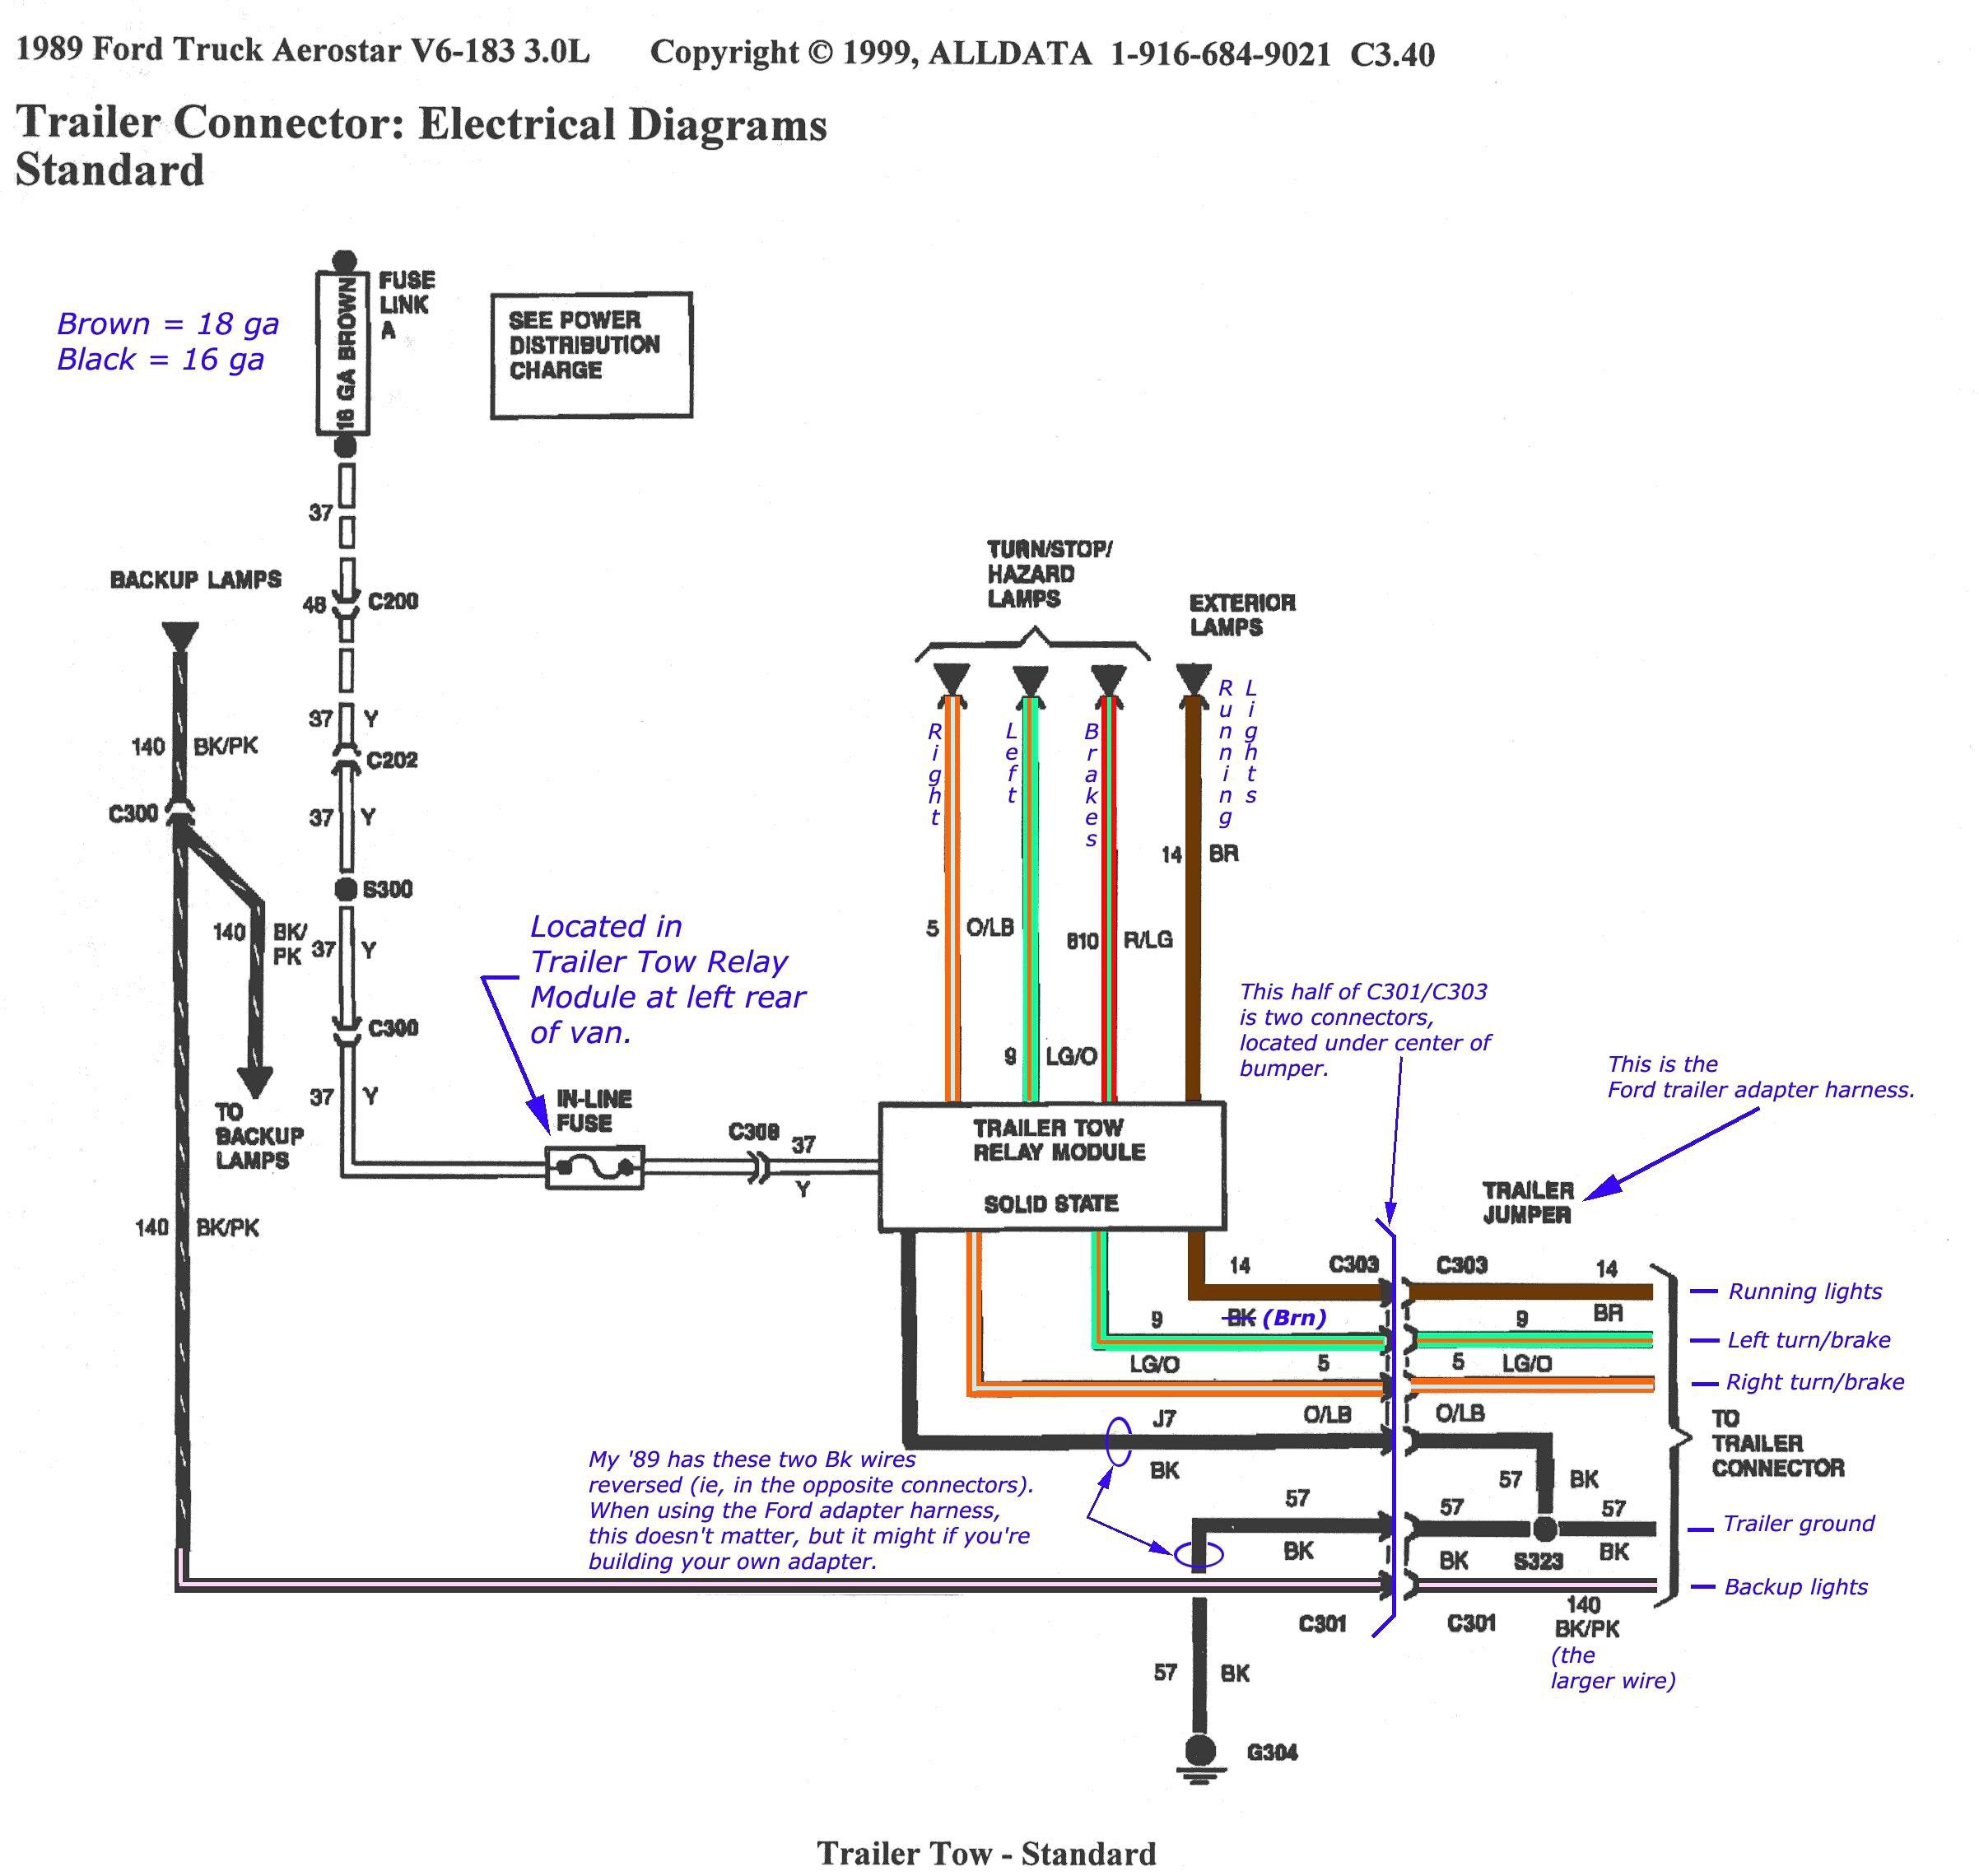 Ford Trailer Wiring Diagram 6 - Wiring Diagrams Click - Wiring Diagram Trailer Lights